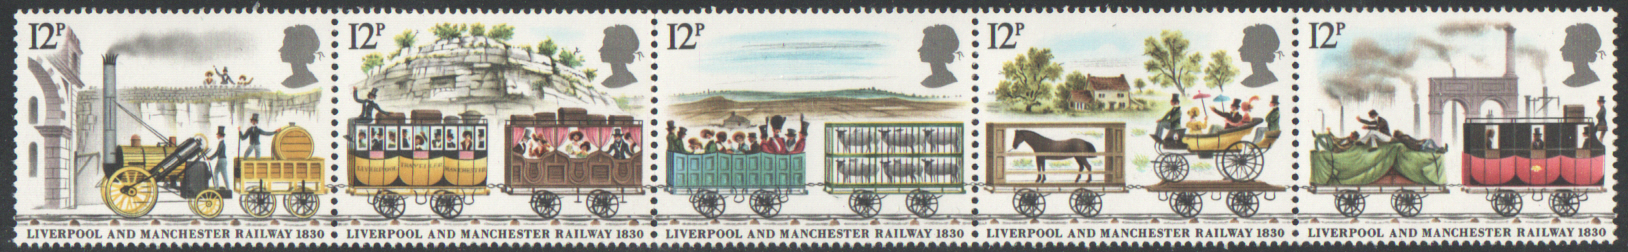 SG1113 / 17 1980 Liverpool & Manchester Railway unmounted mint set of 5